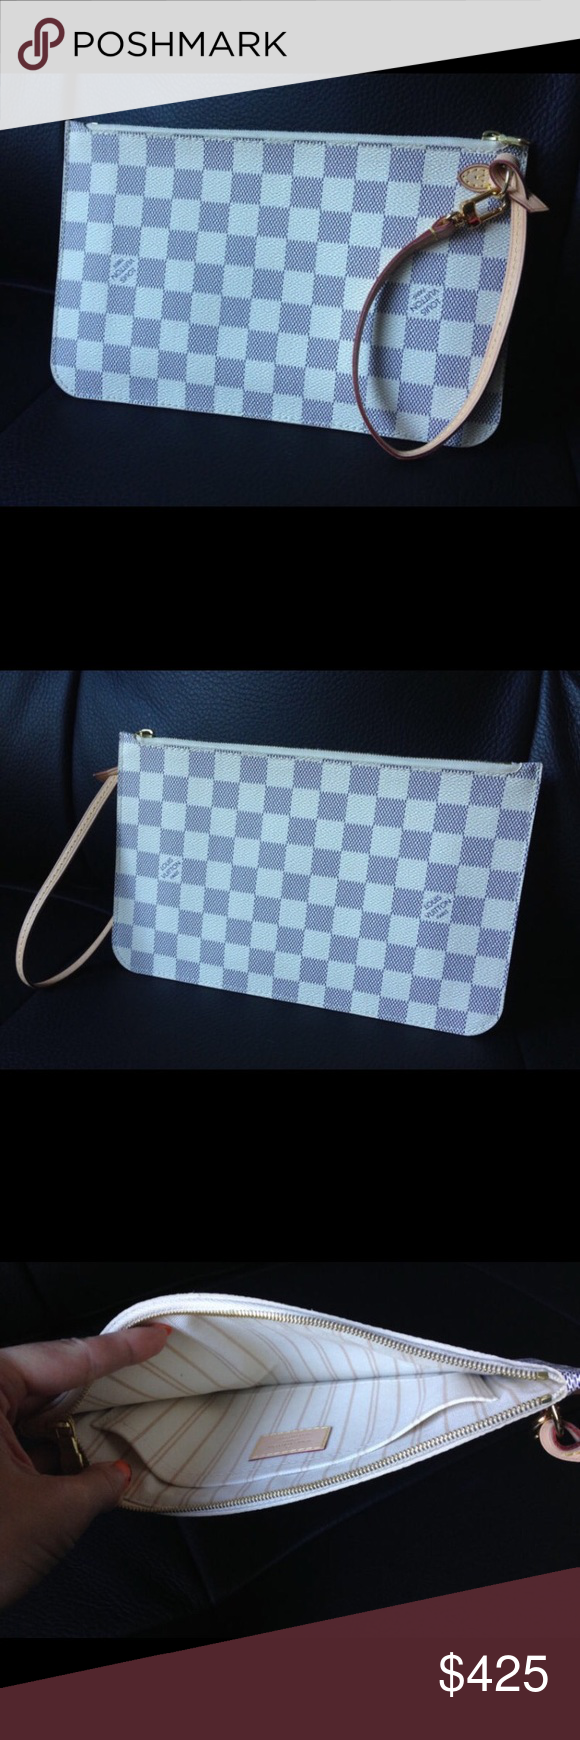 Louis Vuitton Pouch Clutch. 100% Authentic Guaranteed  Louis Vuitton pouchette/wristlet from the MM Neverfull  Approx. size : W24.5cm ×H15cm Brand new.  Date code is MS3144. Shipping with tracking code (EMS, Express Mail Service). Louis Vuitton Bags Clutches & Wristlets